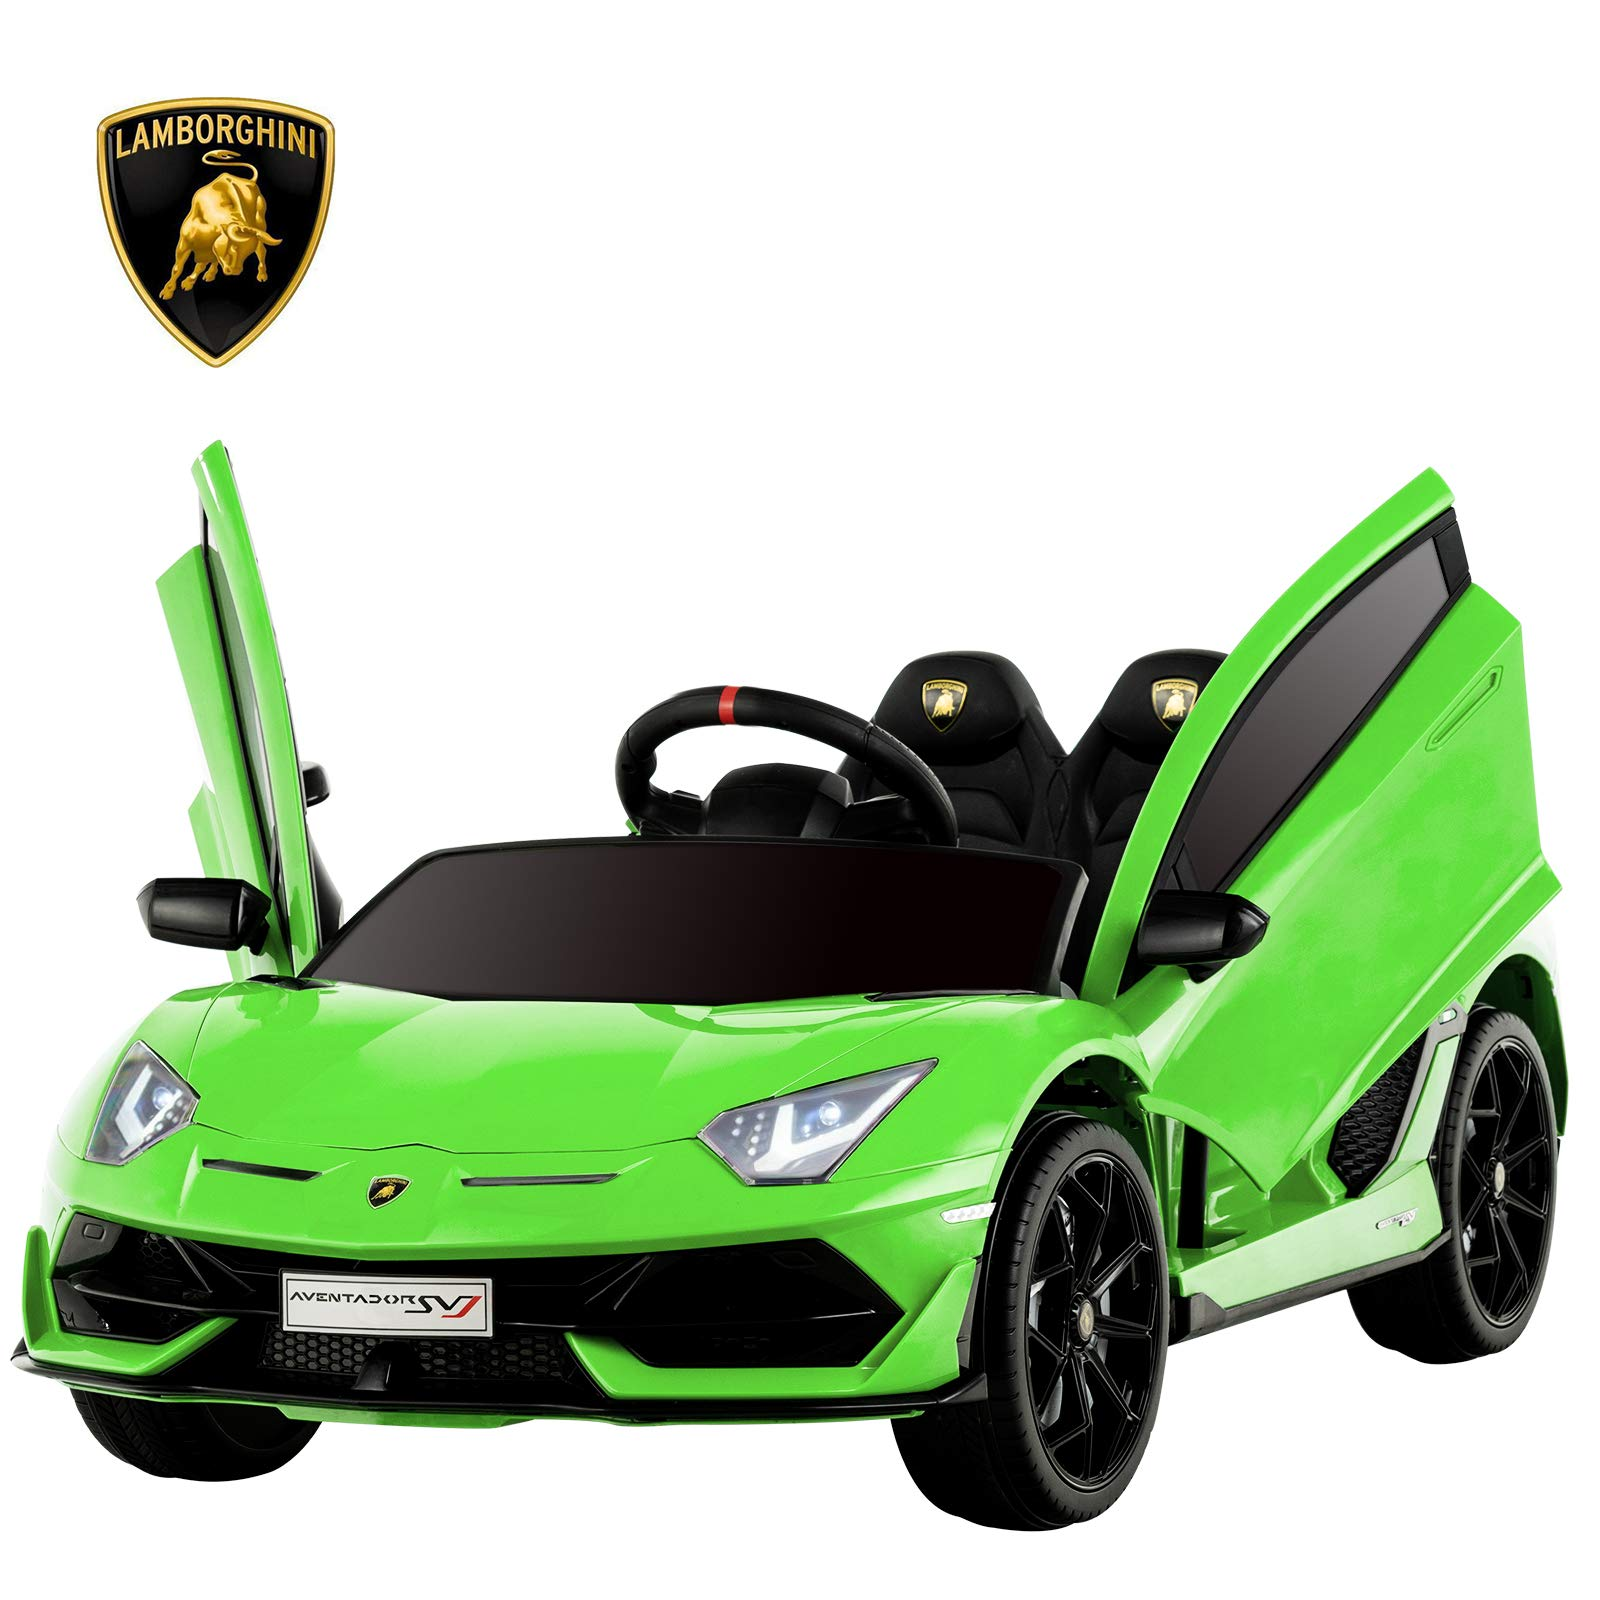 Uenjoy 12V Kids Electric Ride On Car Lamborghini Aventador SVJ Motorized Vehicles with Remote Control, Battery Powered, LED Lights, Wheels Suspension, Music, Horn,Compatible with Lamborghini,Green